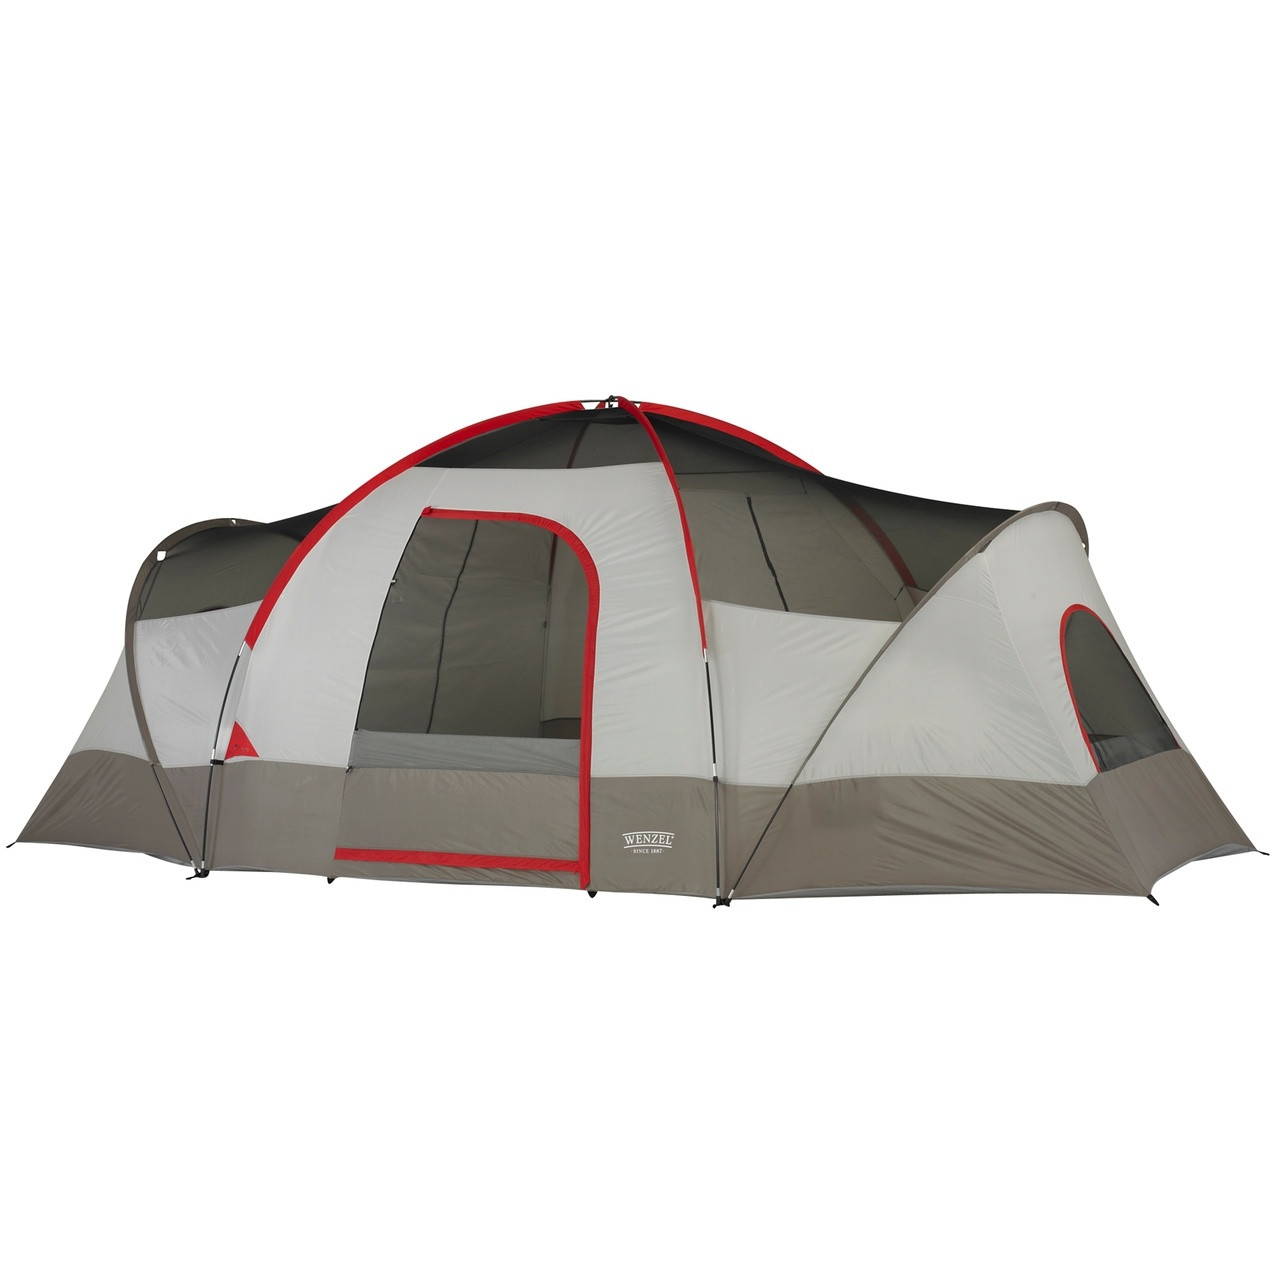 Front view of the Wenzel Great Basin 10 tent setup with the rain fly off